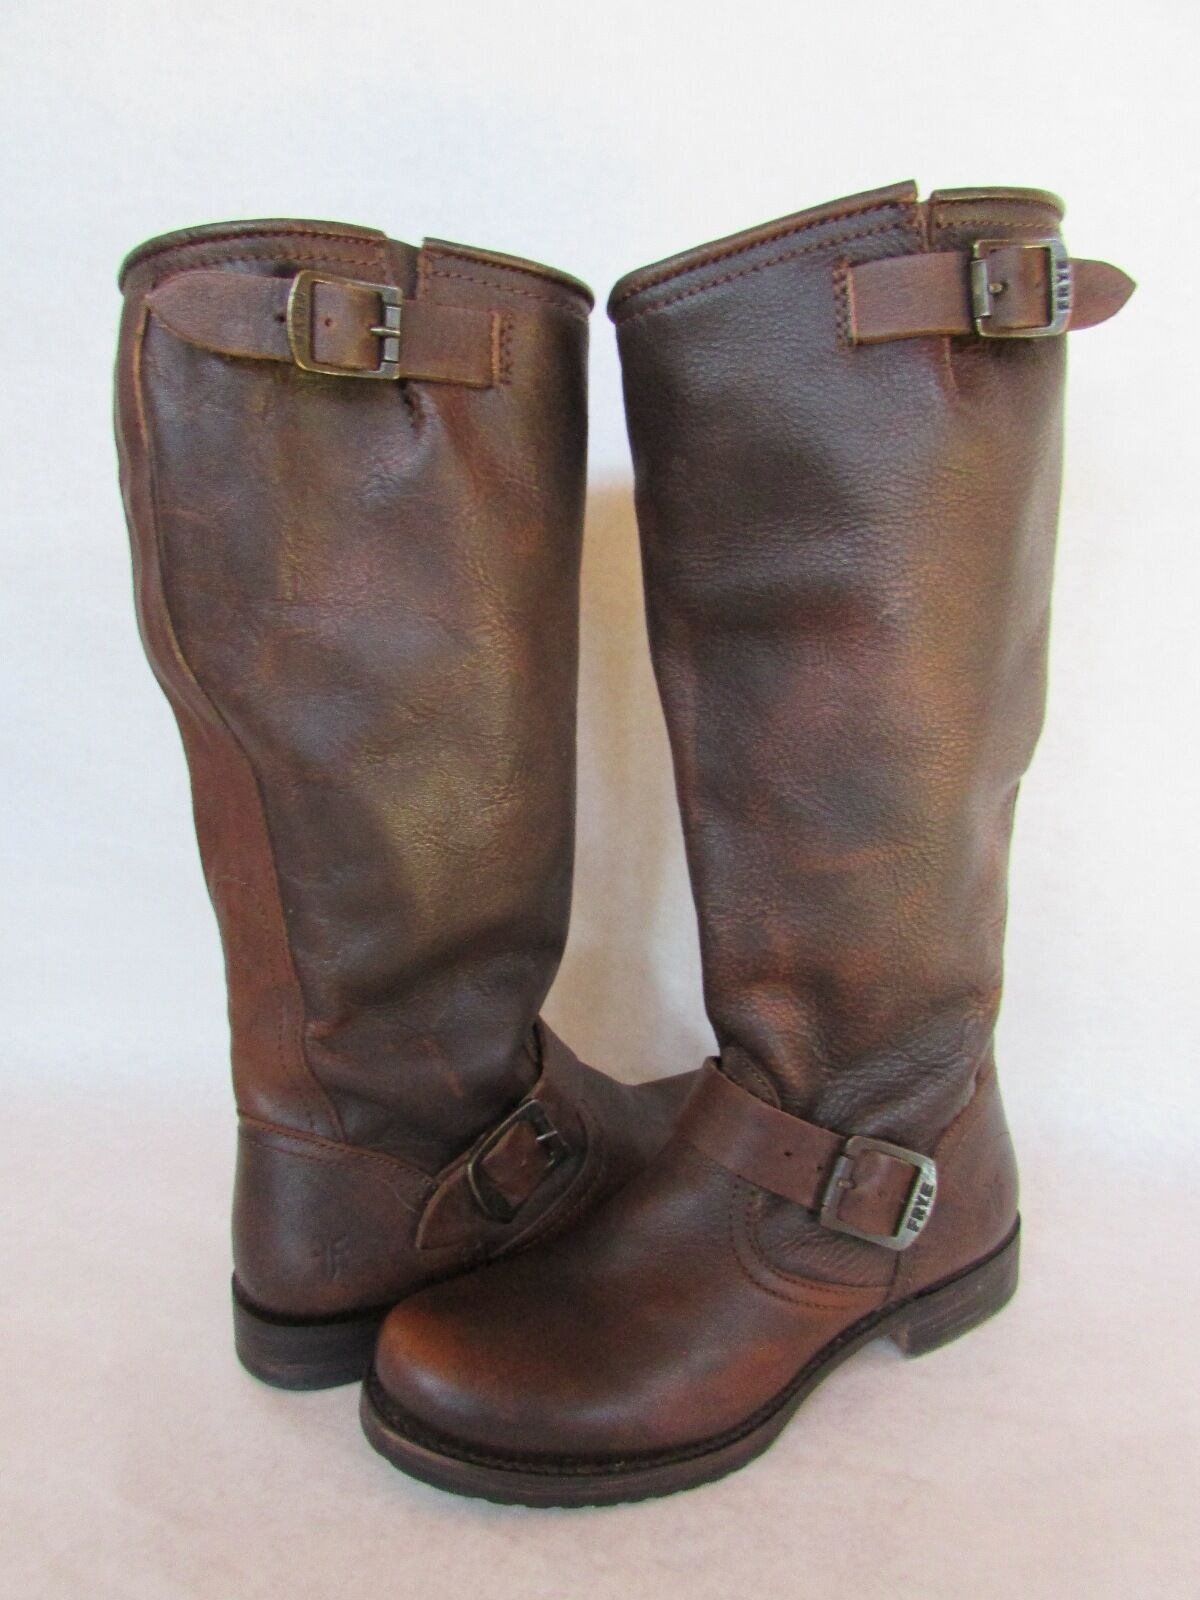 FRYE Veronica Slouch Slouch Slouch Stiefel Braun Riding Buckle 77606 Größe 6/ 6.5 EUC c4c813